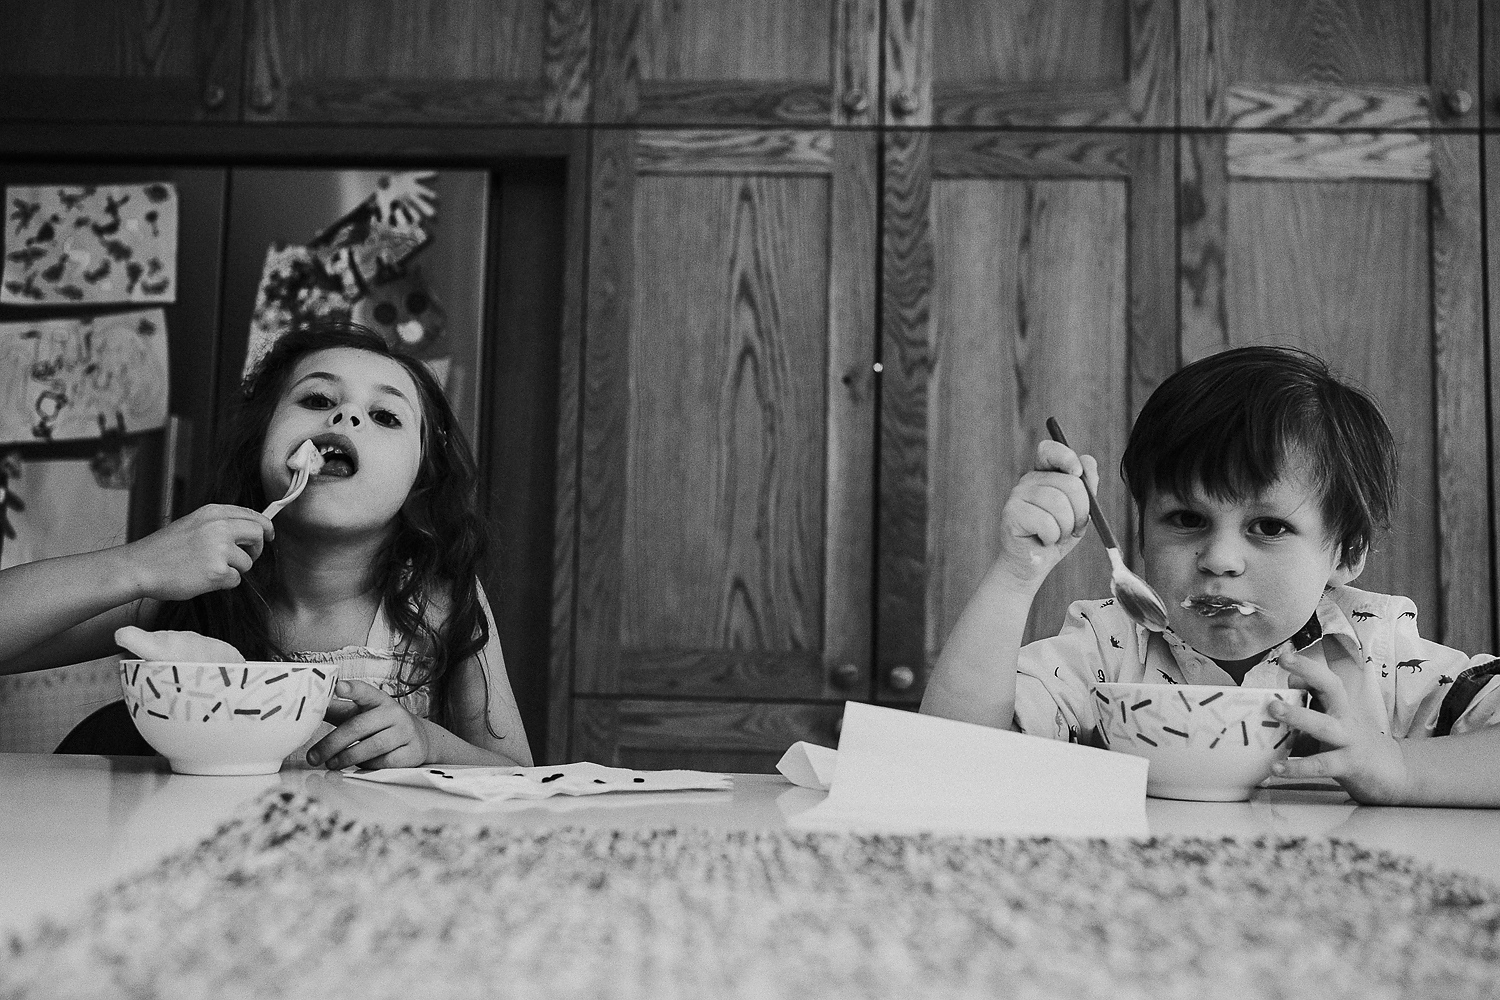 BOOKING A FAMILY PHOTO SESSION BROTHER AND SISTER CHILDREN EATING FOOD FROM A BOWL AT KITCHEN COUNTER